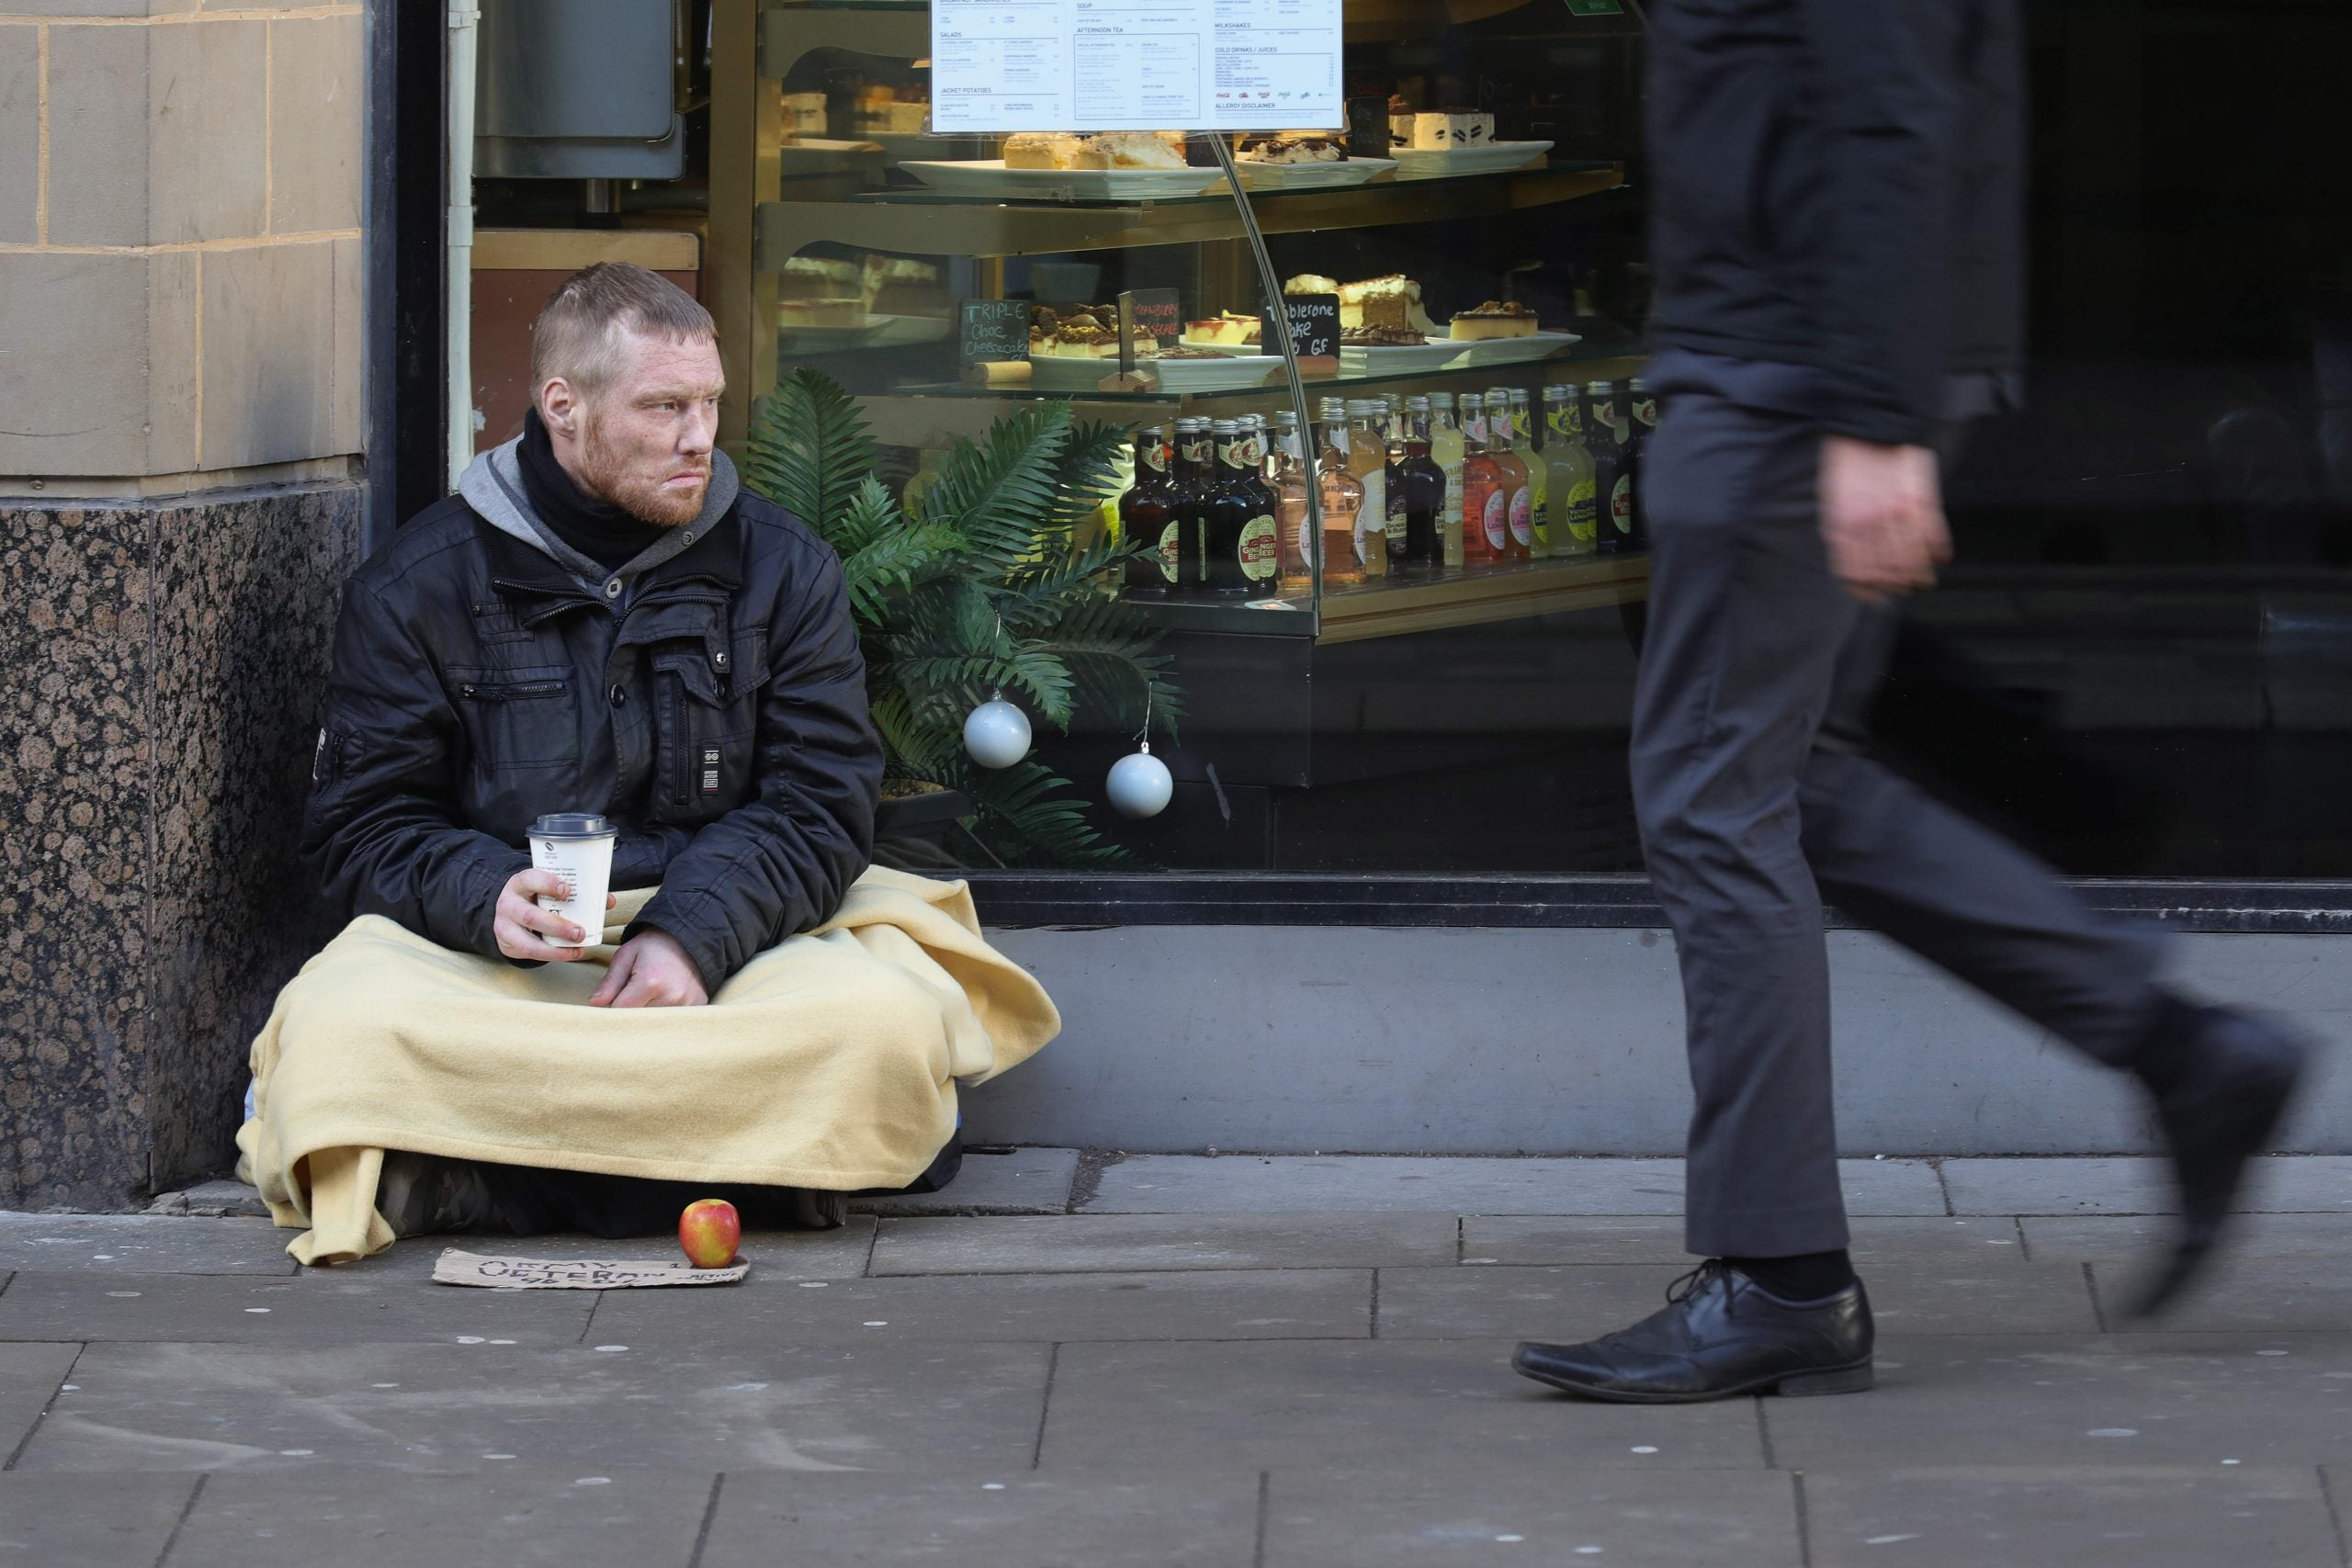 Why you should give money directly and unconditionally to homeless people